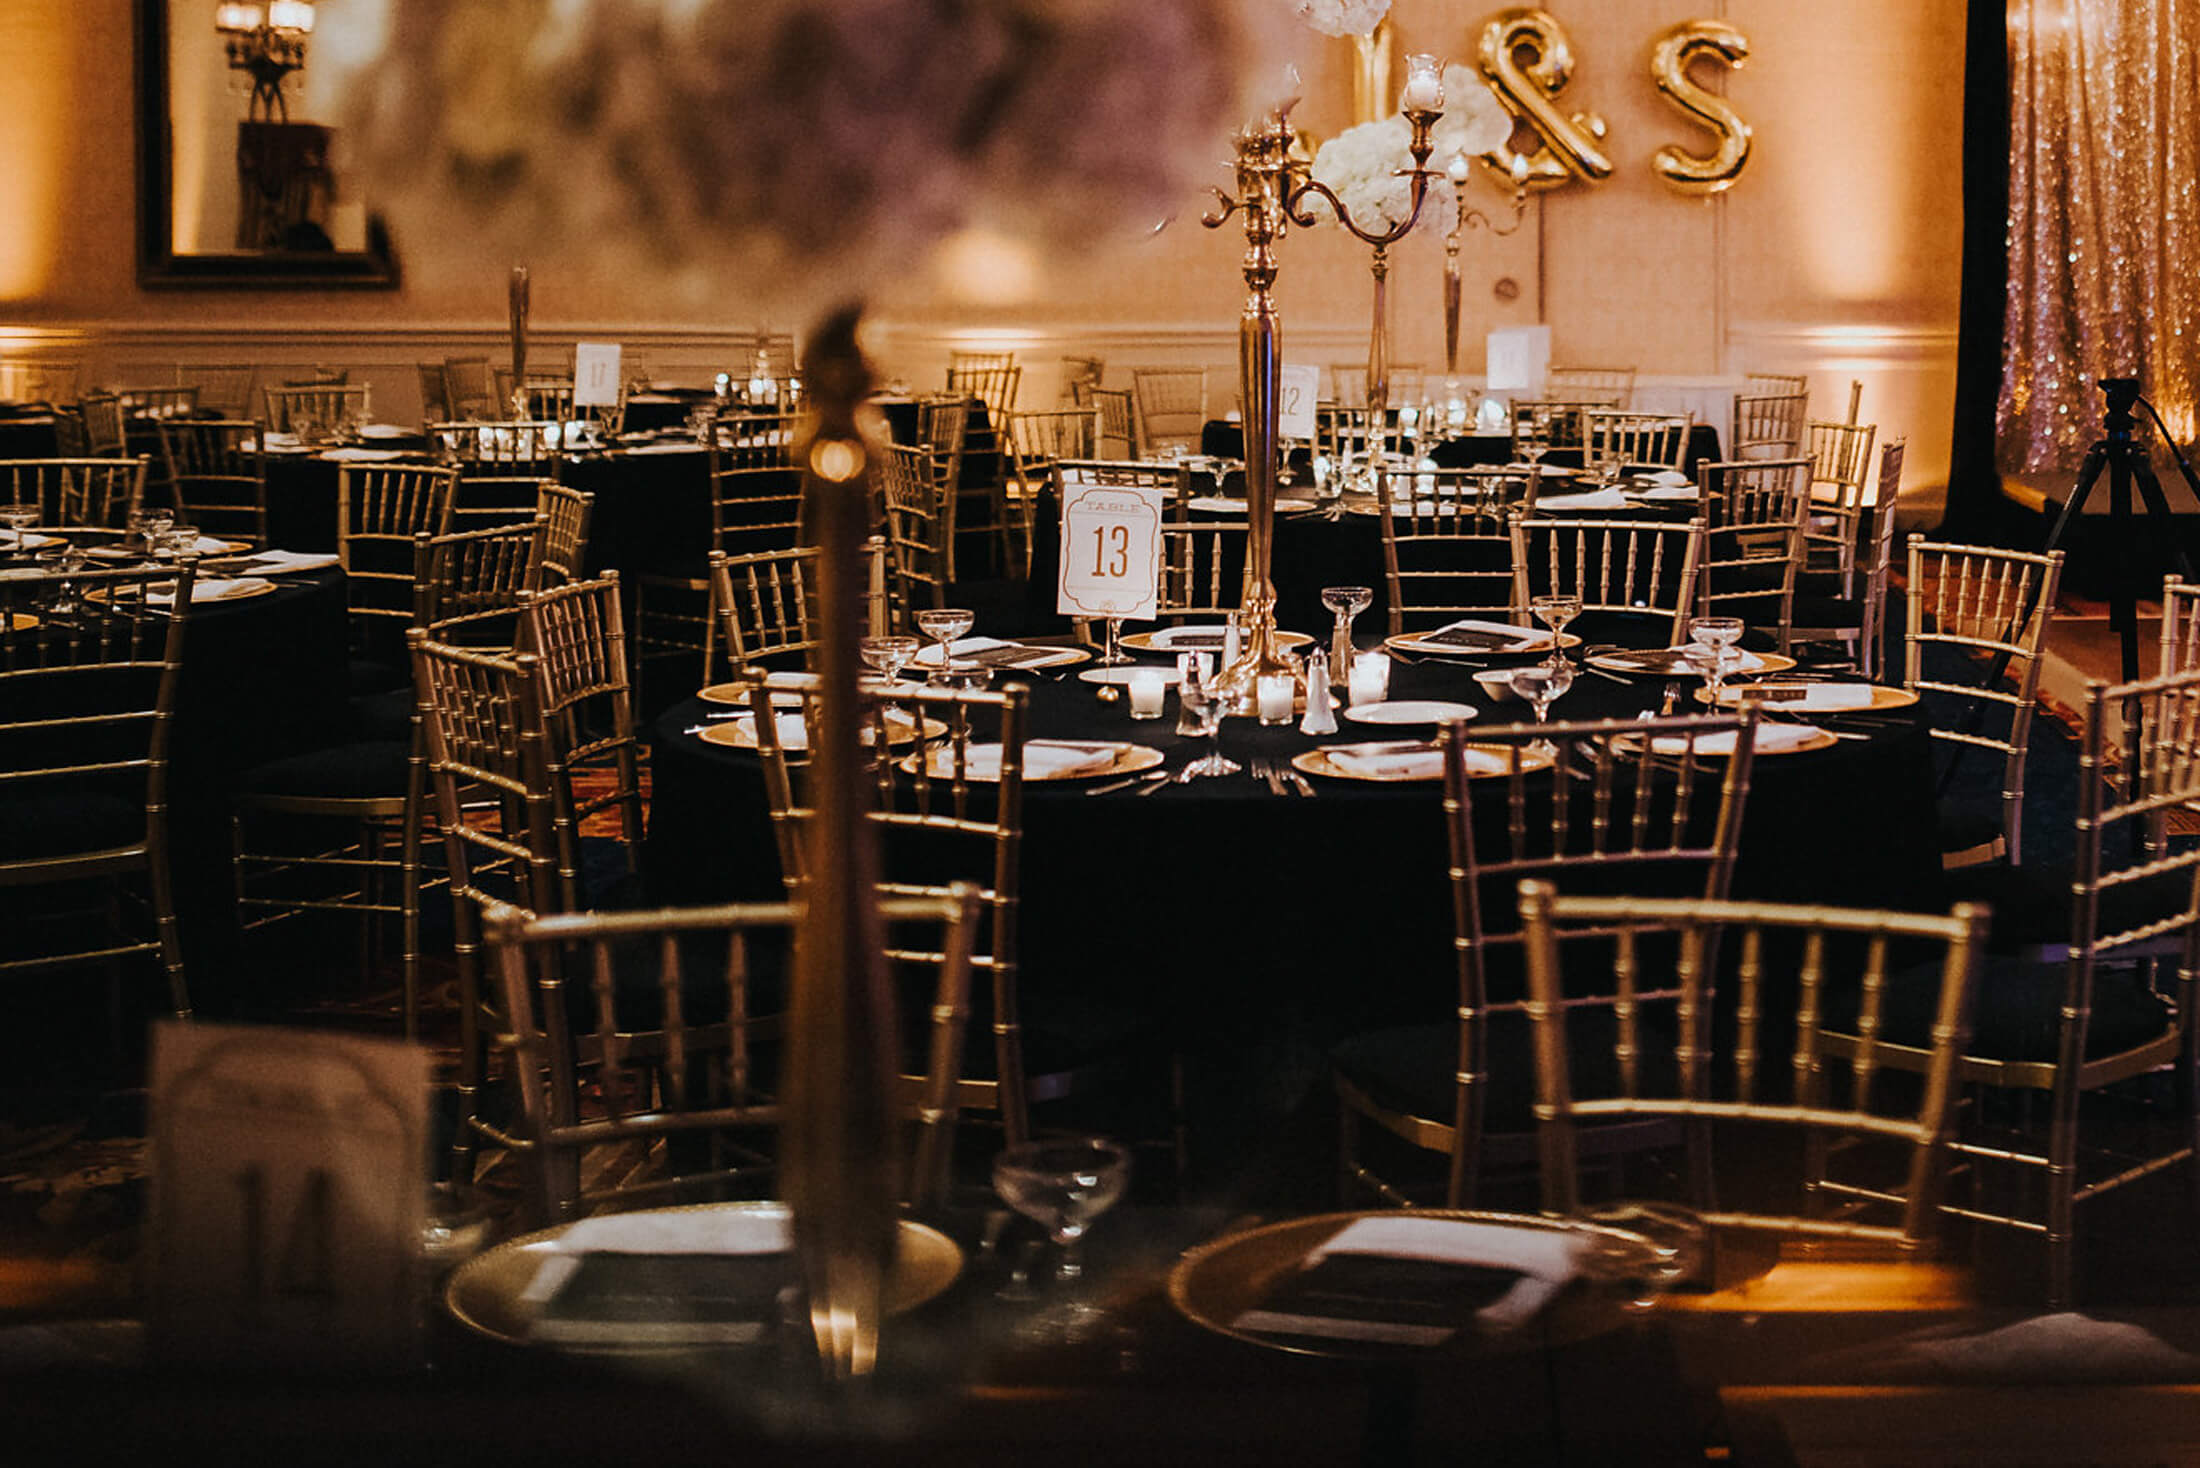 Wedding ceremonies and receptions at The Kensington Hotel